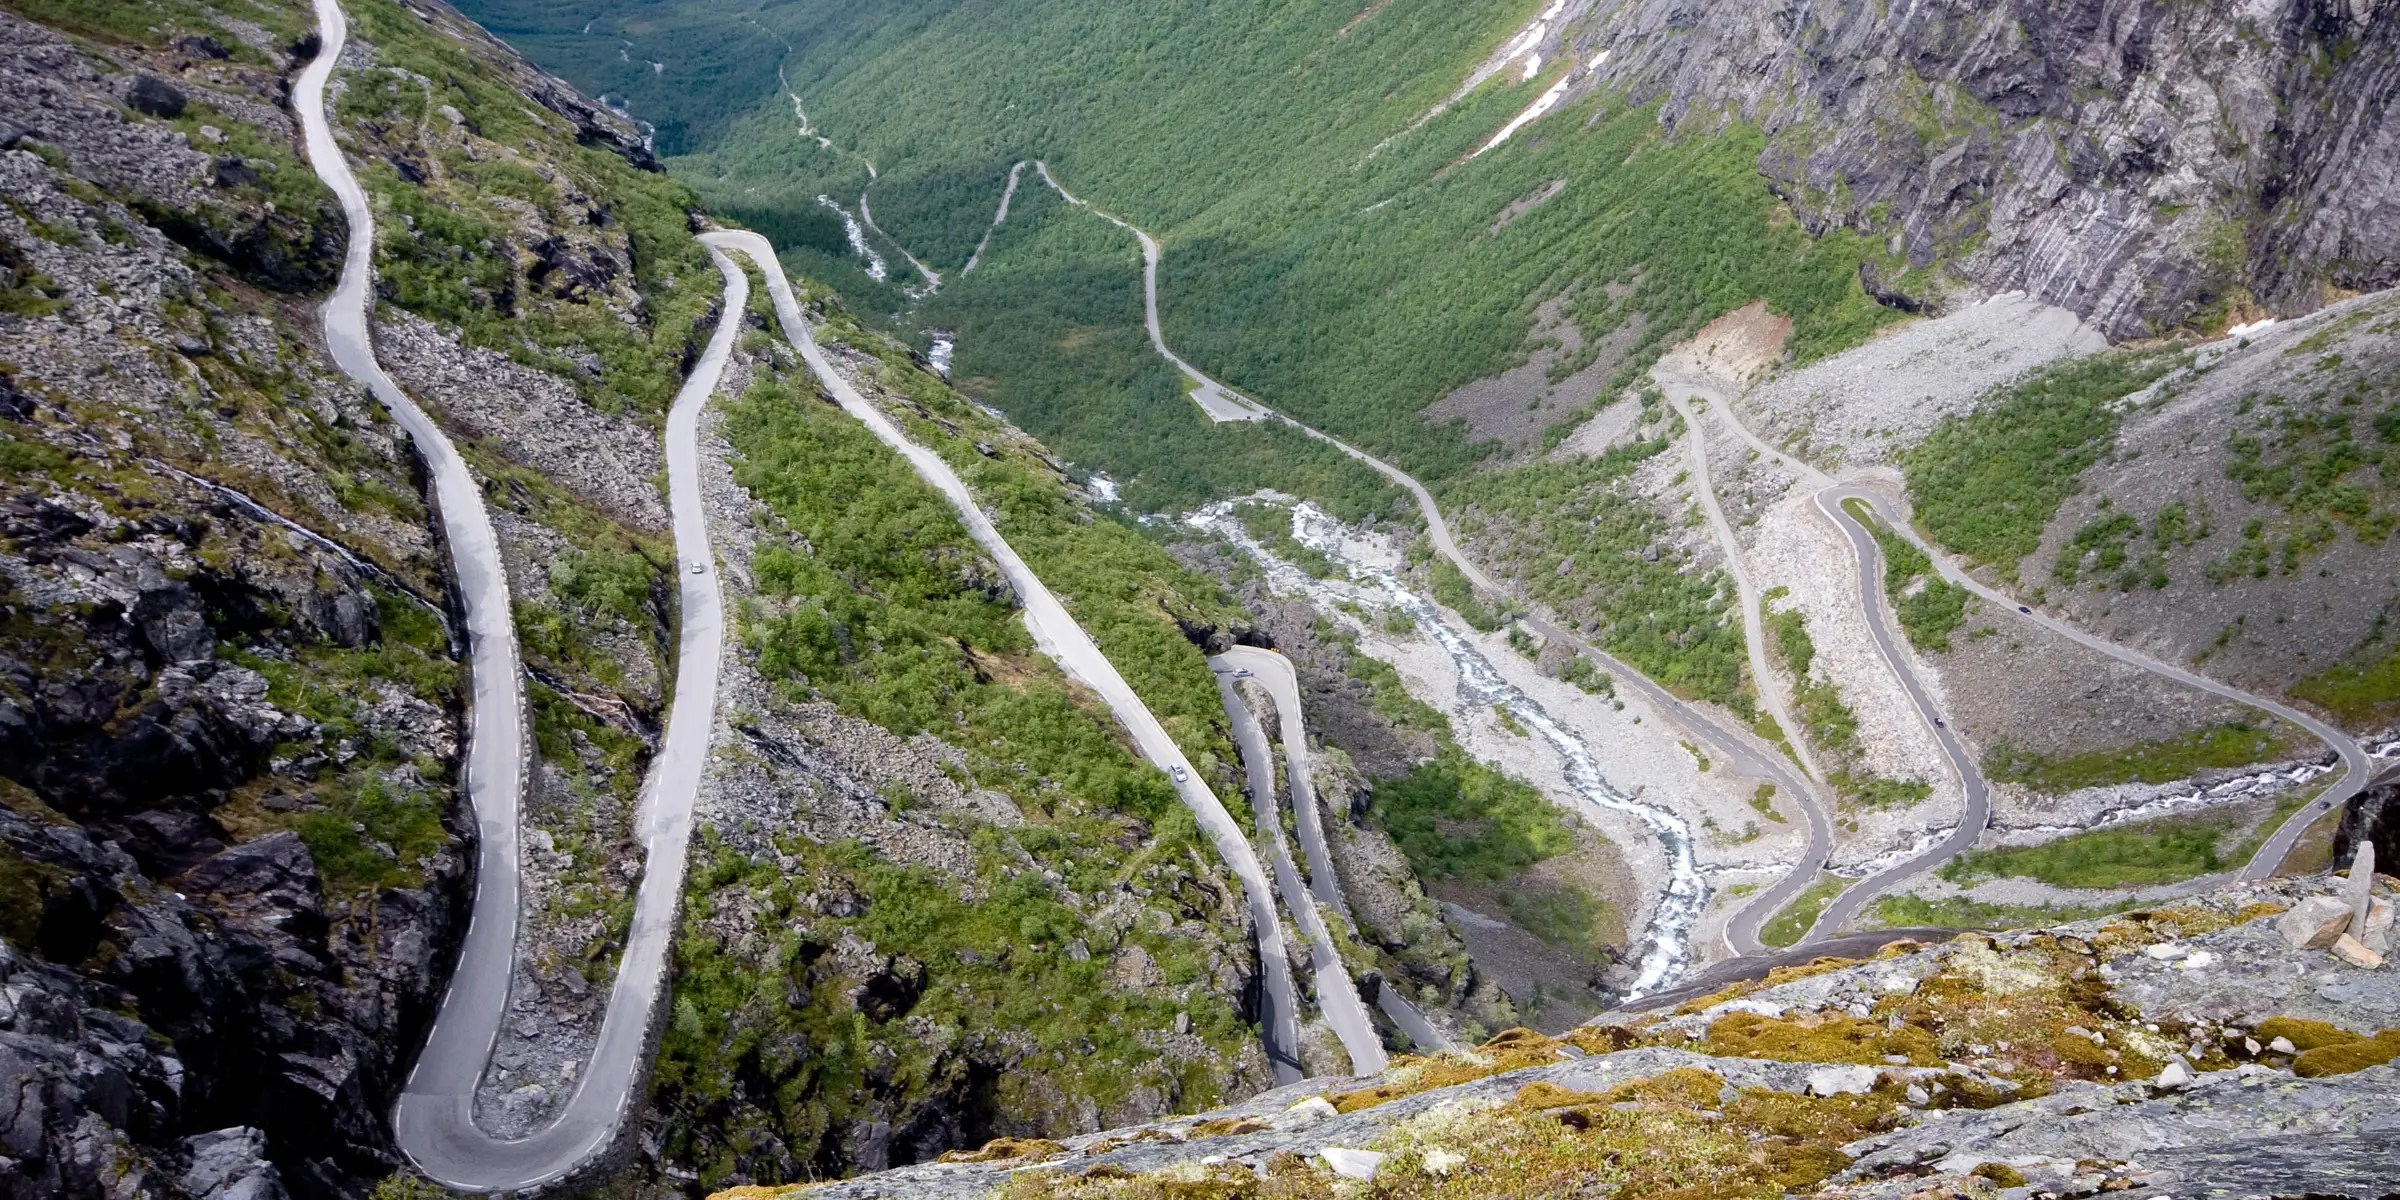 """The Trollstigen road in Norway means """"troll ladder,"""" and that name is very fitting for this extremely narrow and steep winding road. If you make it to the top, you'll be rewarded with views of the Stigfossen waterfall, a 1,050-foot waterfall that tumbles over the mountains."""